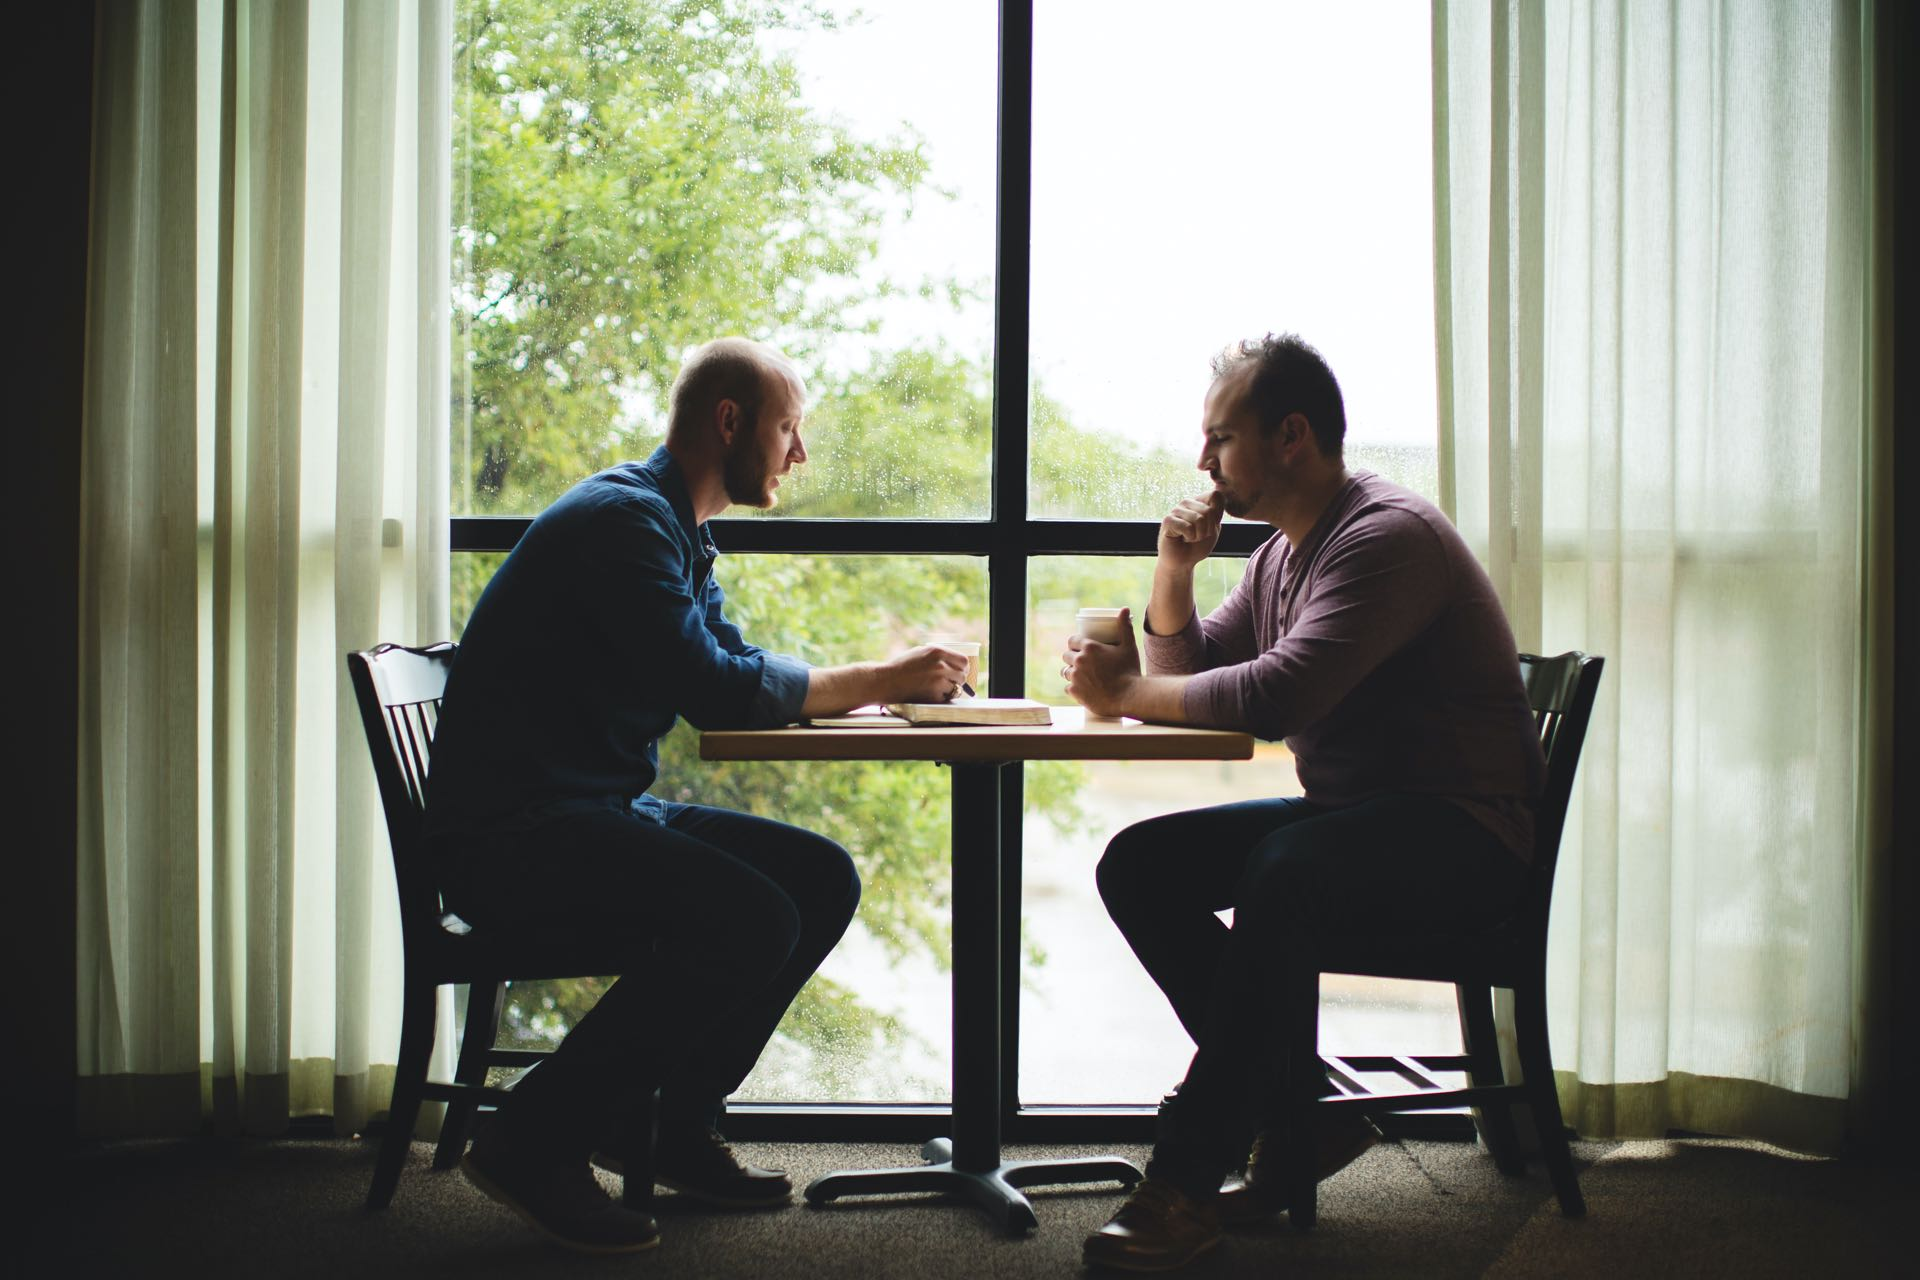 Two men at a table having a conversation over coffee